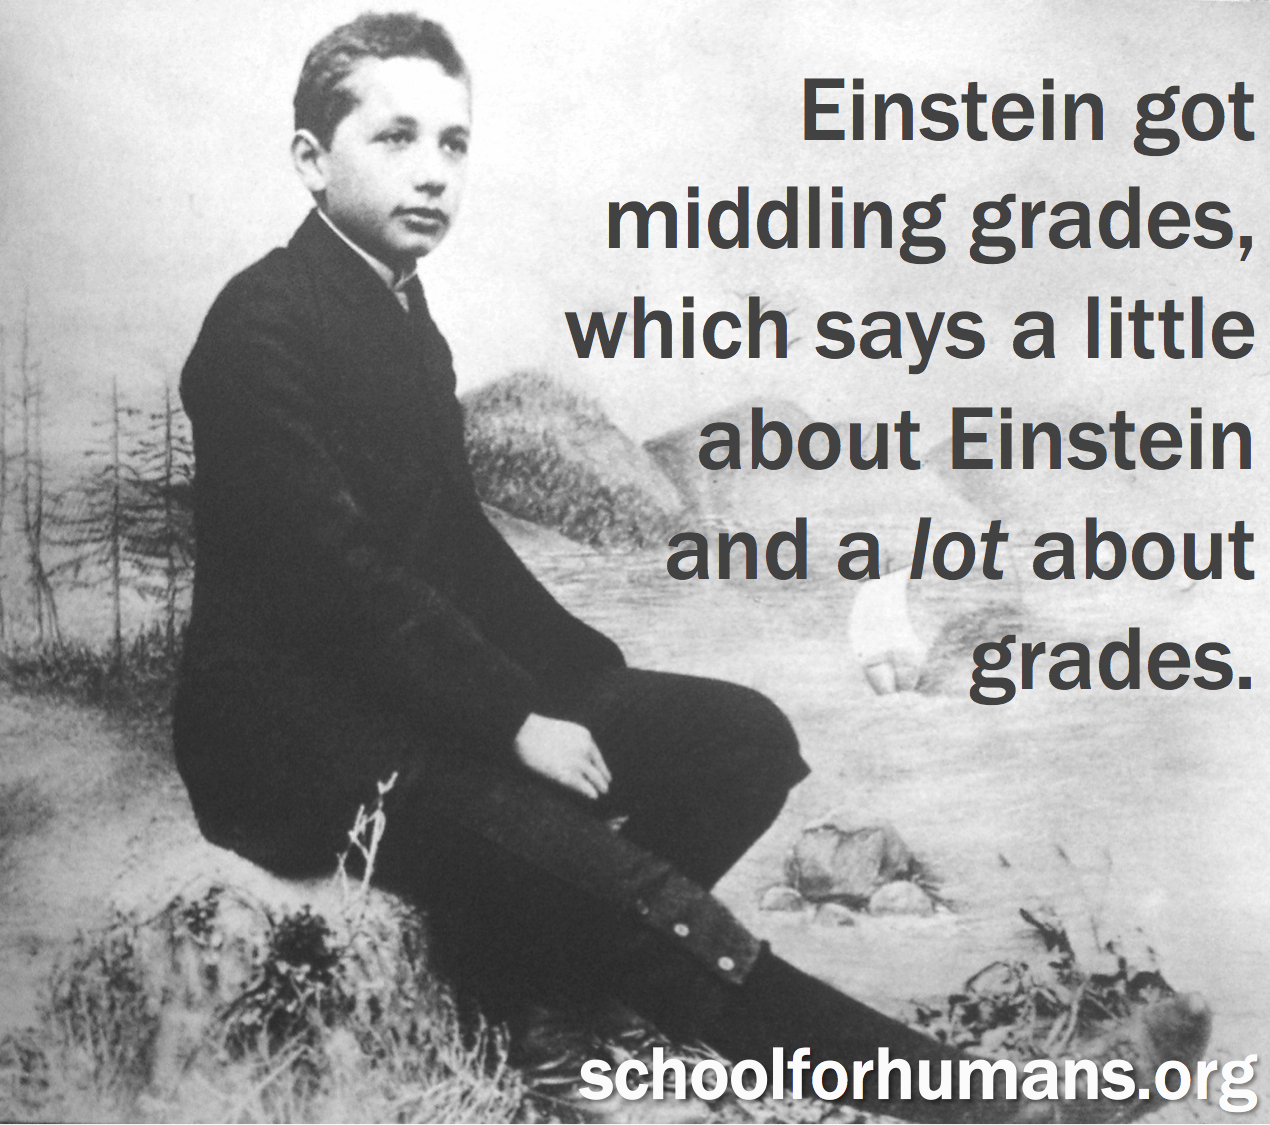 einsteinmiddlinggrades.jpg